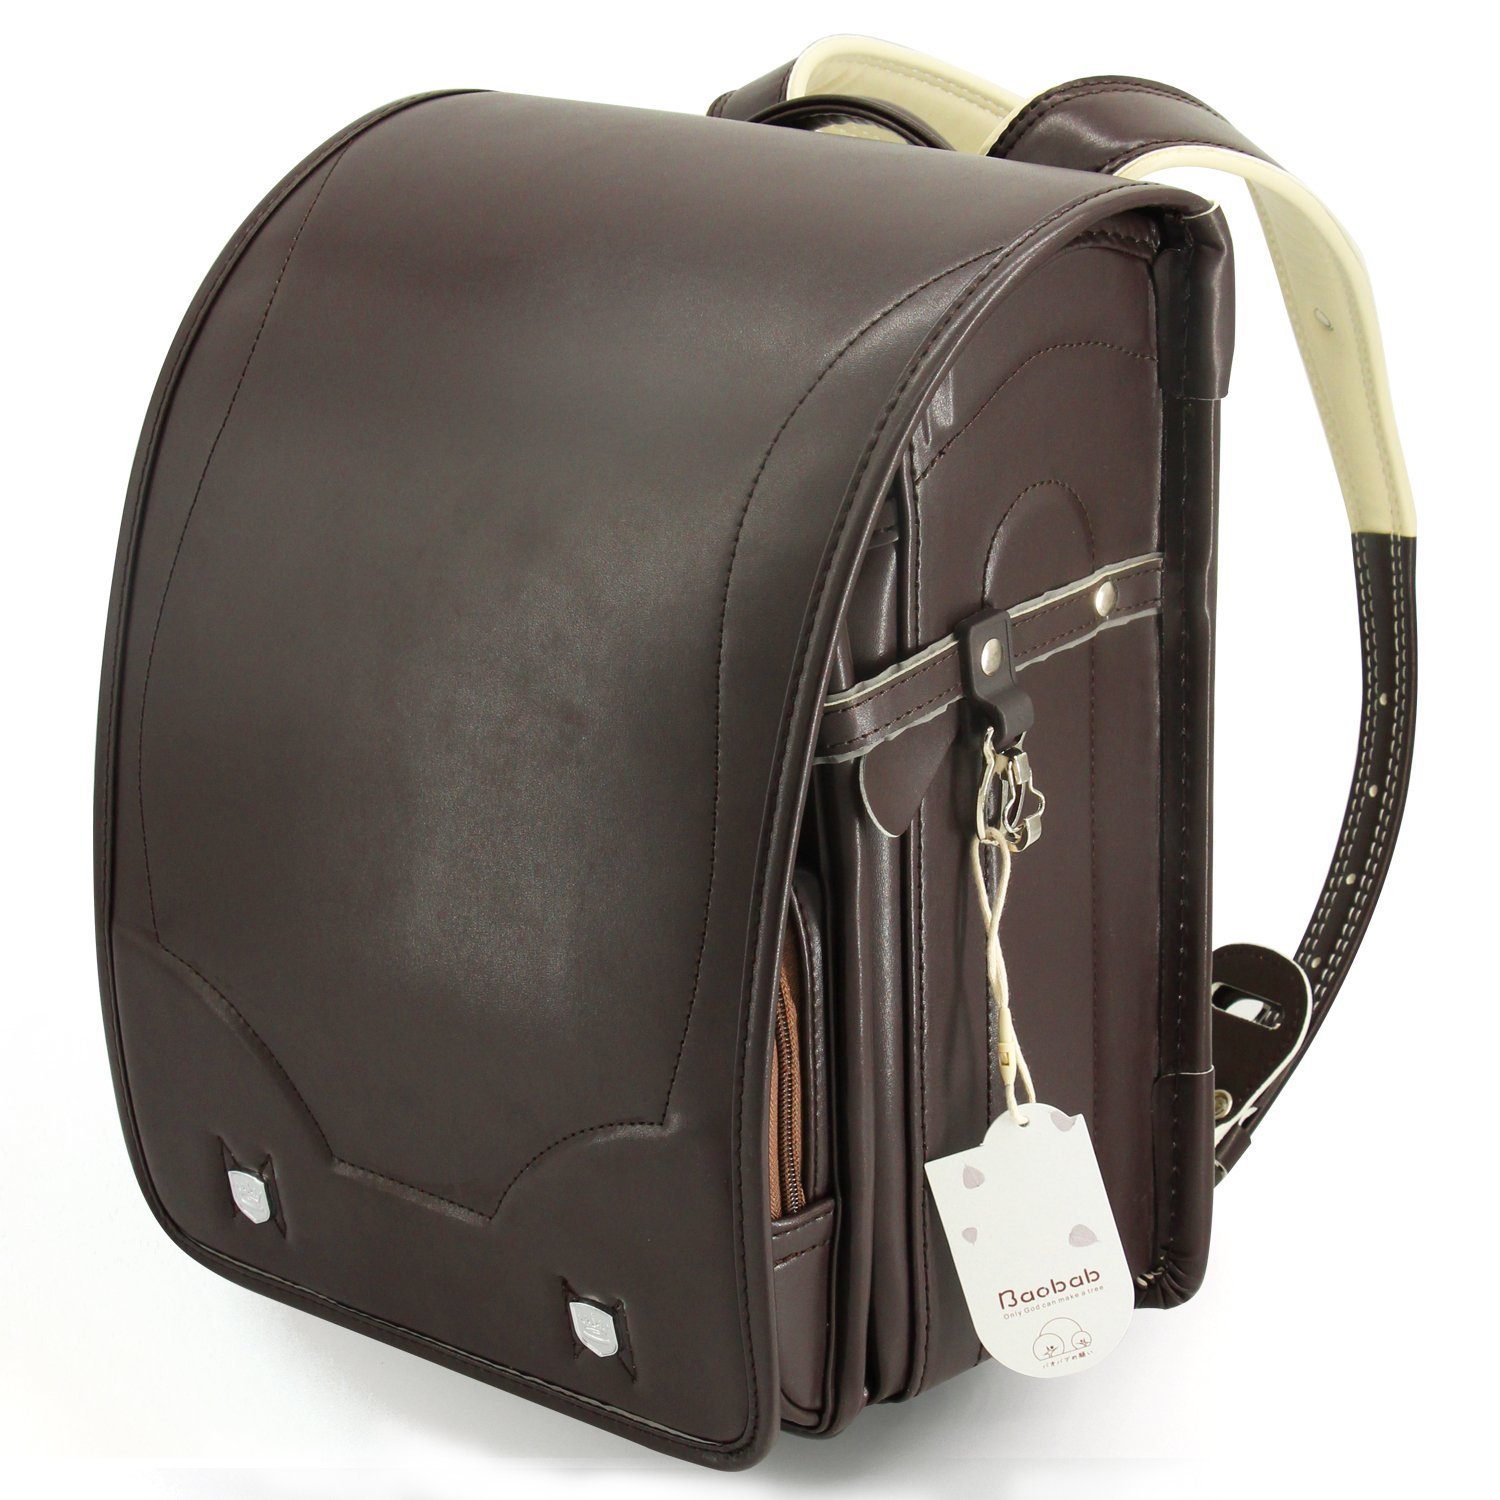 Ransel Randoseru upscale full automatic Japanese schoolbags for girls and boys With Rain Cover brown by Baobab's Wish